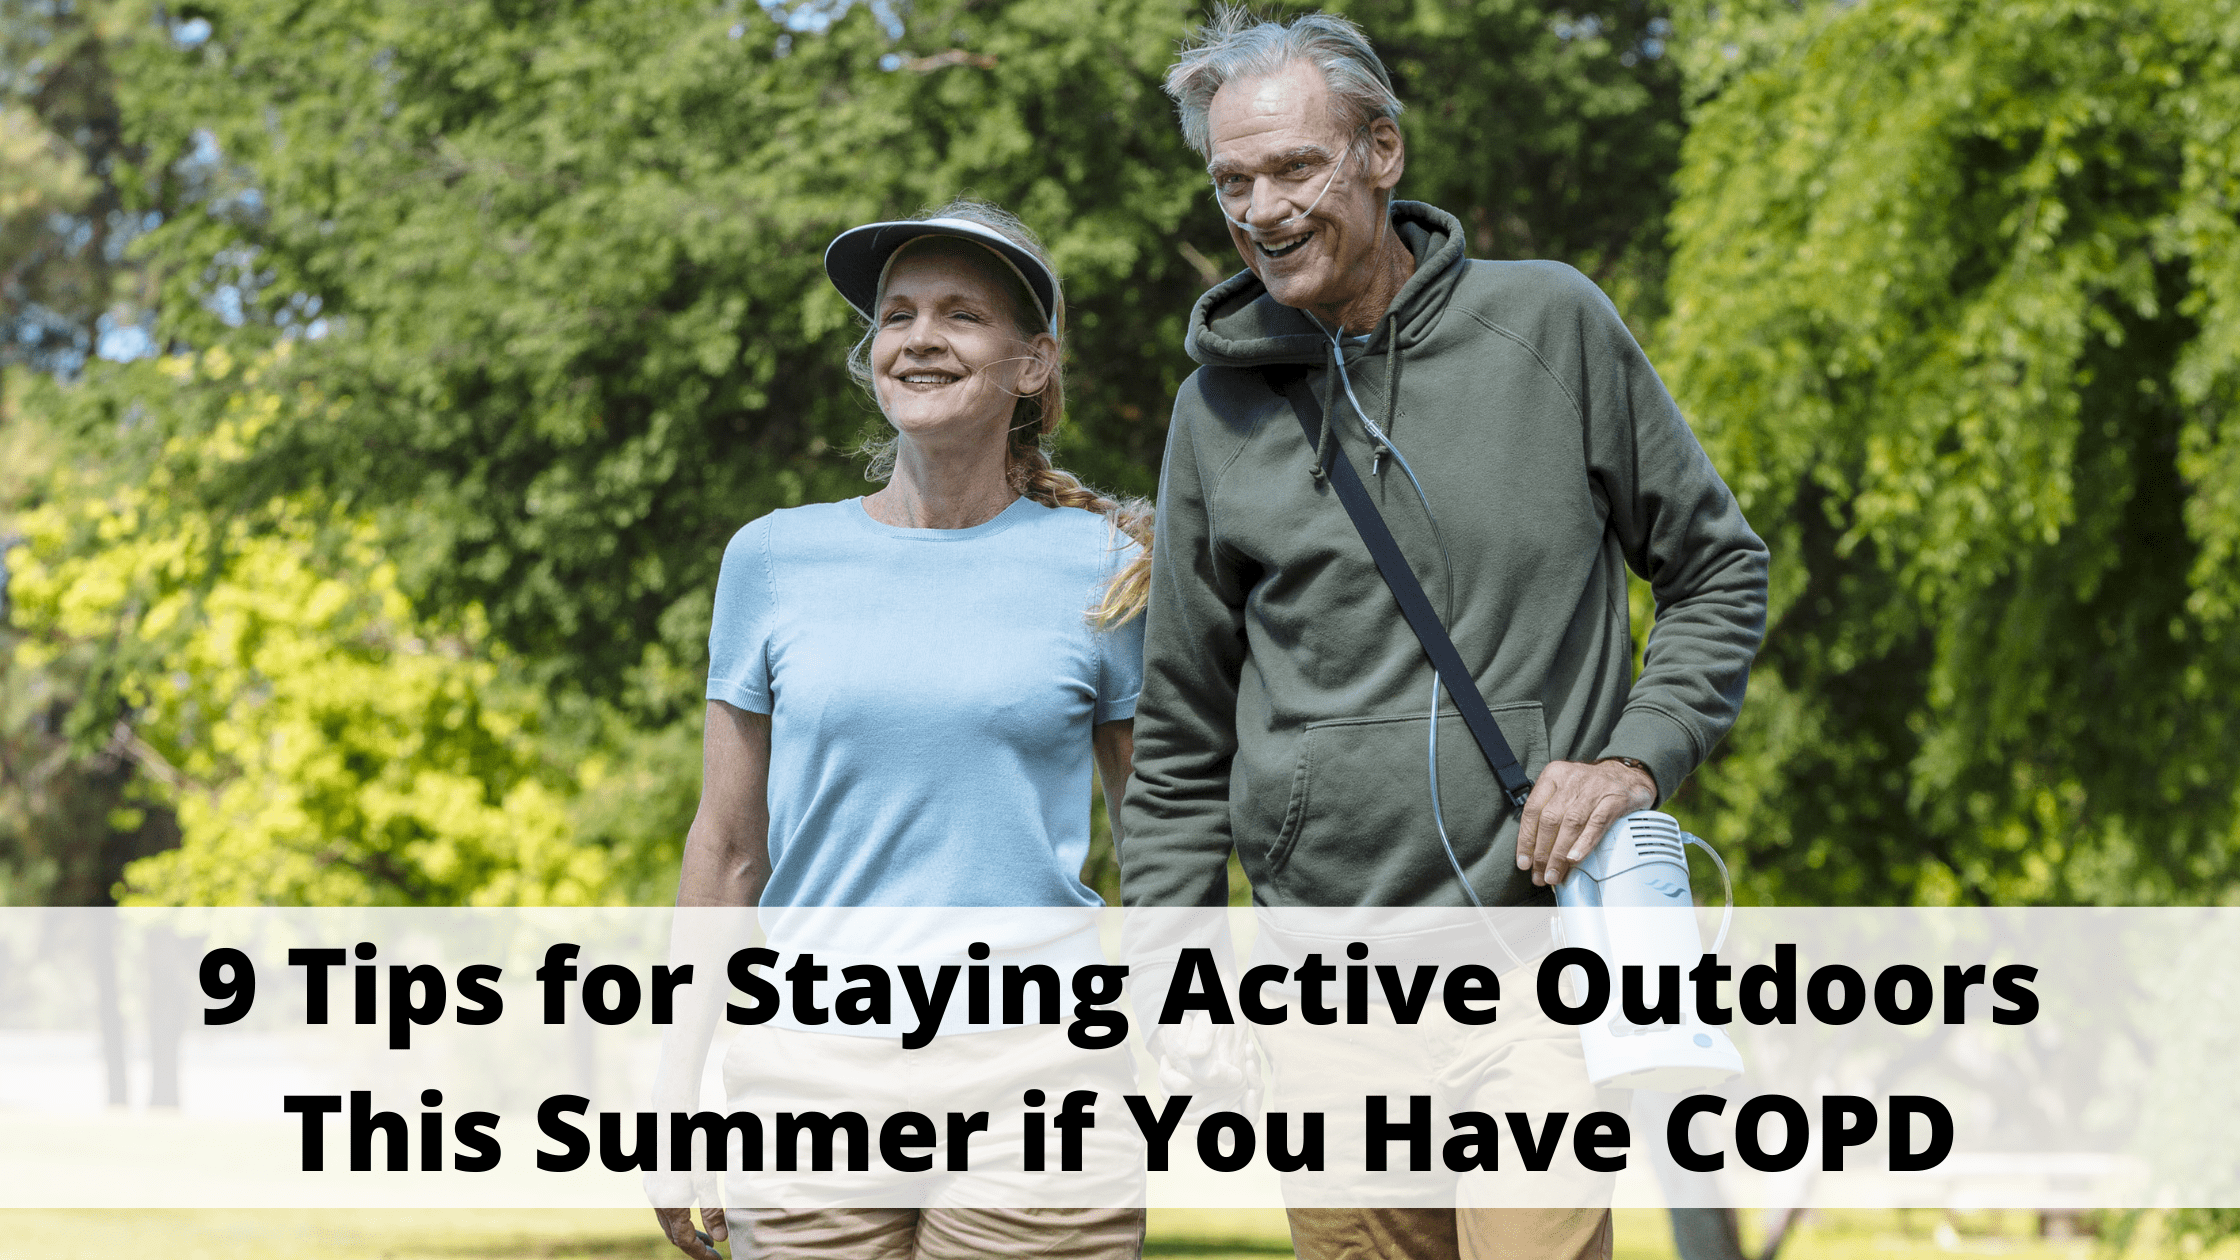 9 Tips for Staying Active Outdoors This Summer if You Have COPD